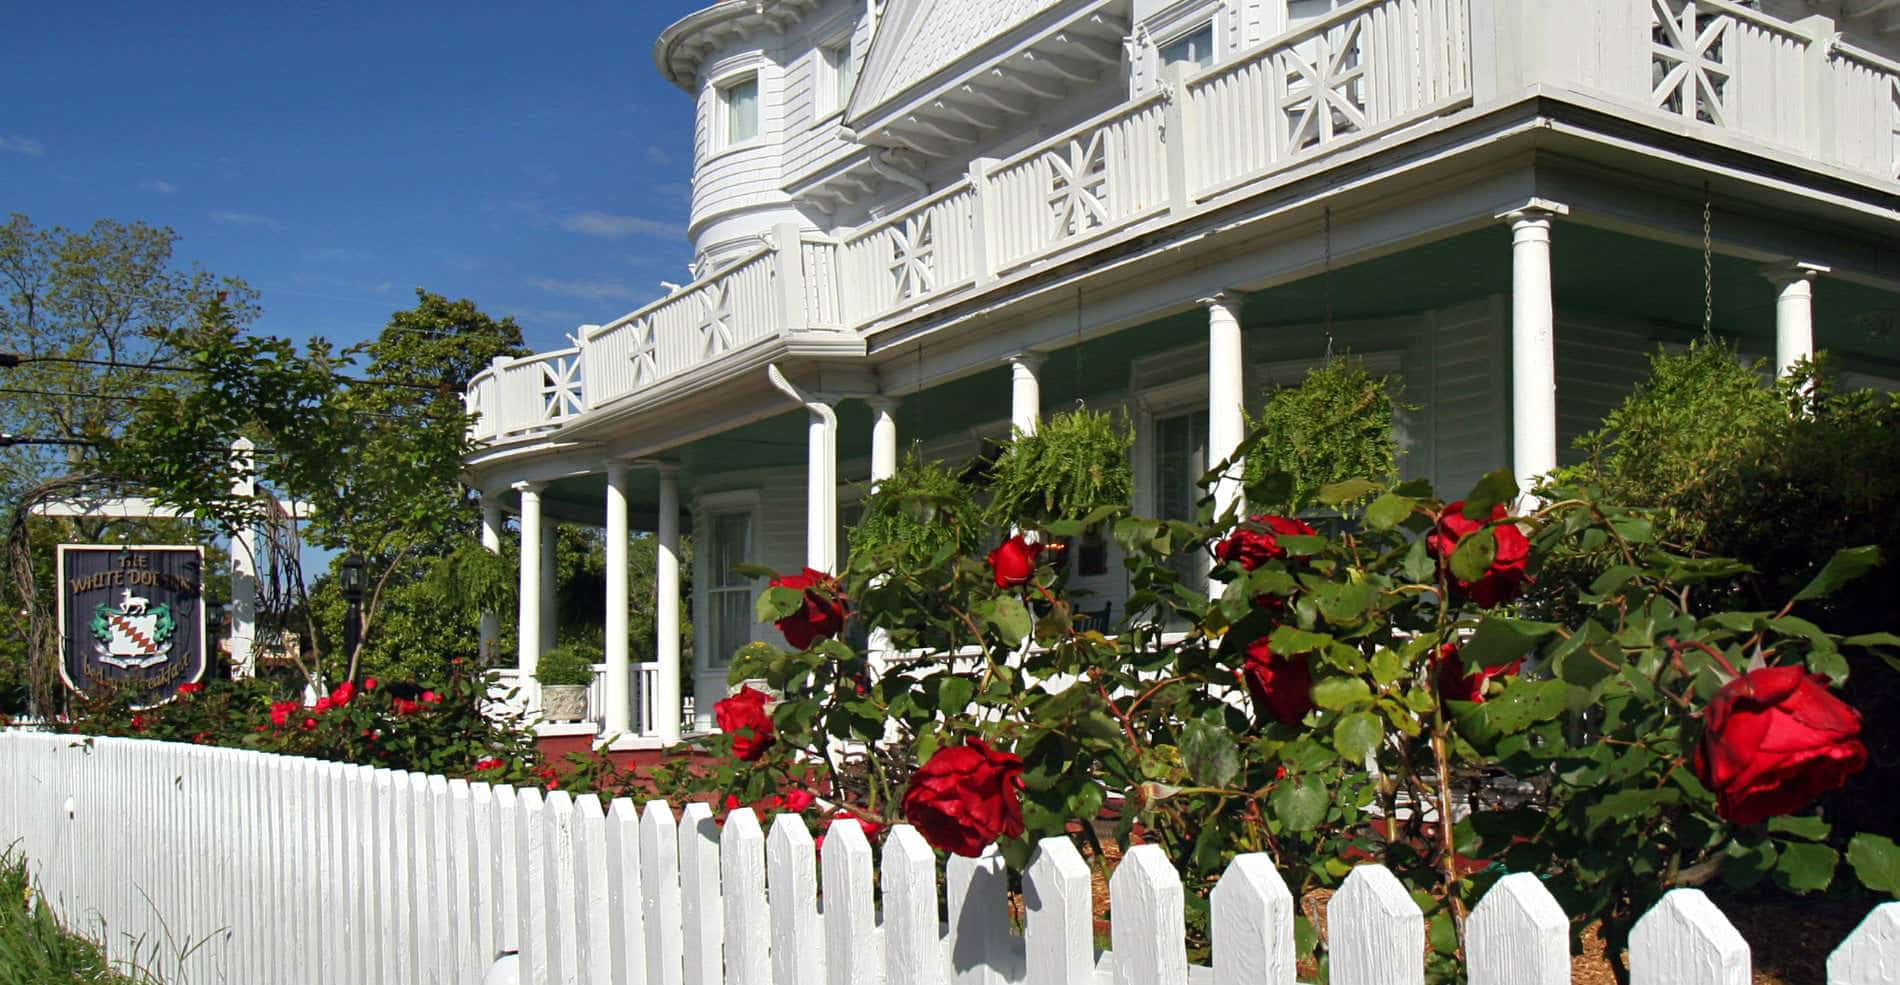 A beautiful view of the inn, with the white picket fence and bright red roses in the foreground